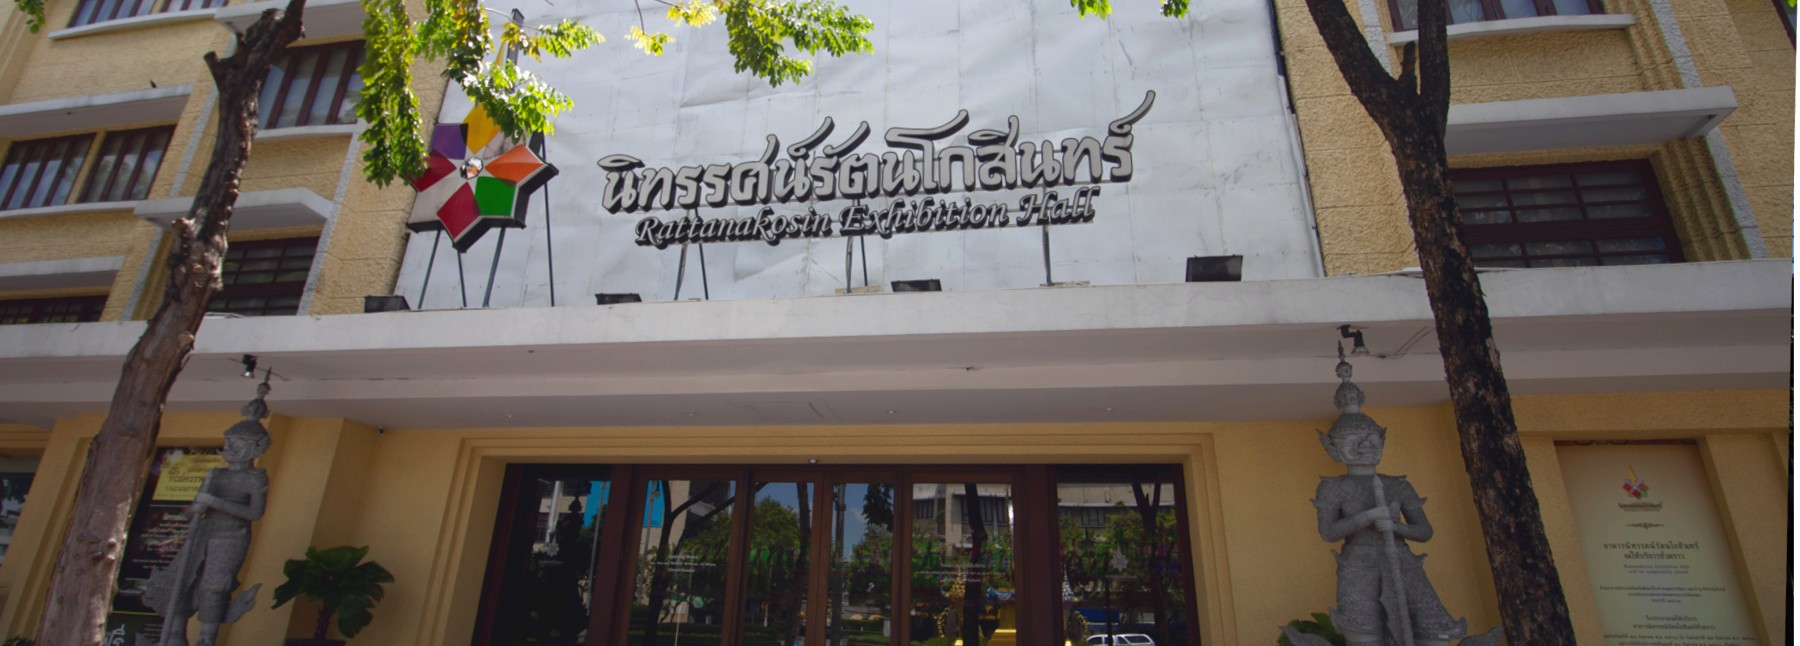 rattanakosin-exhibition-hall-nitas-rattanakosin